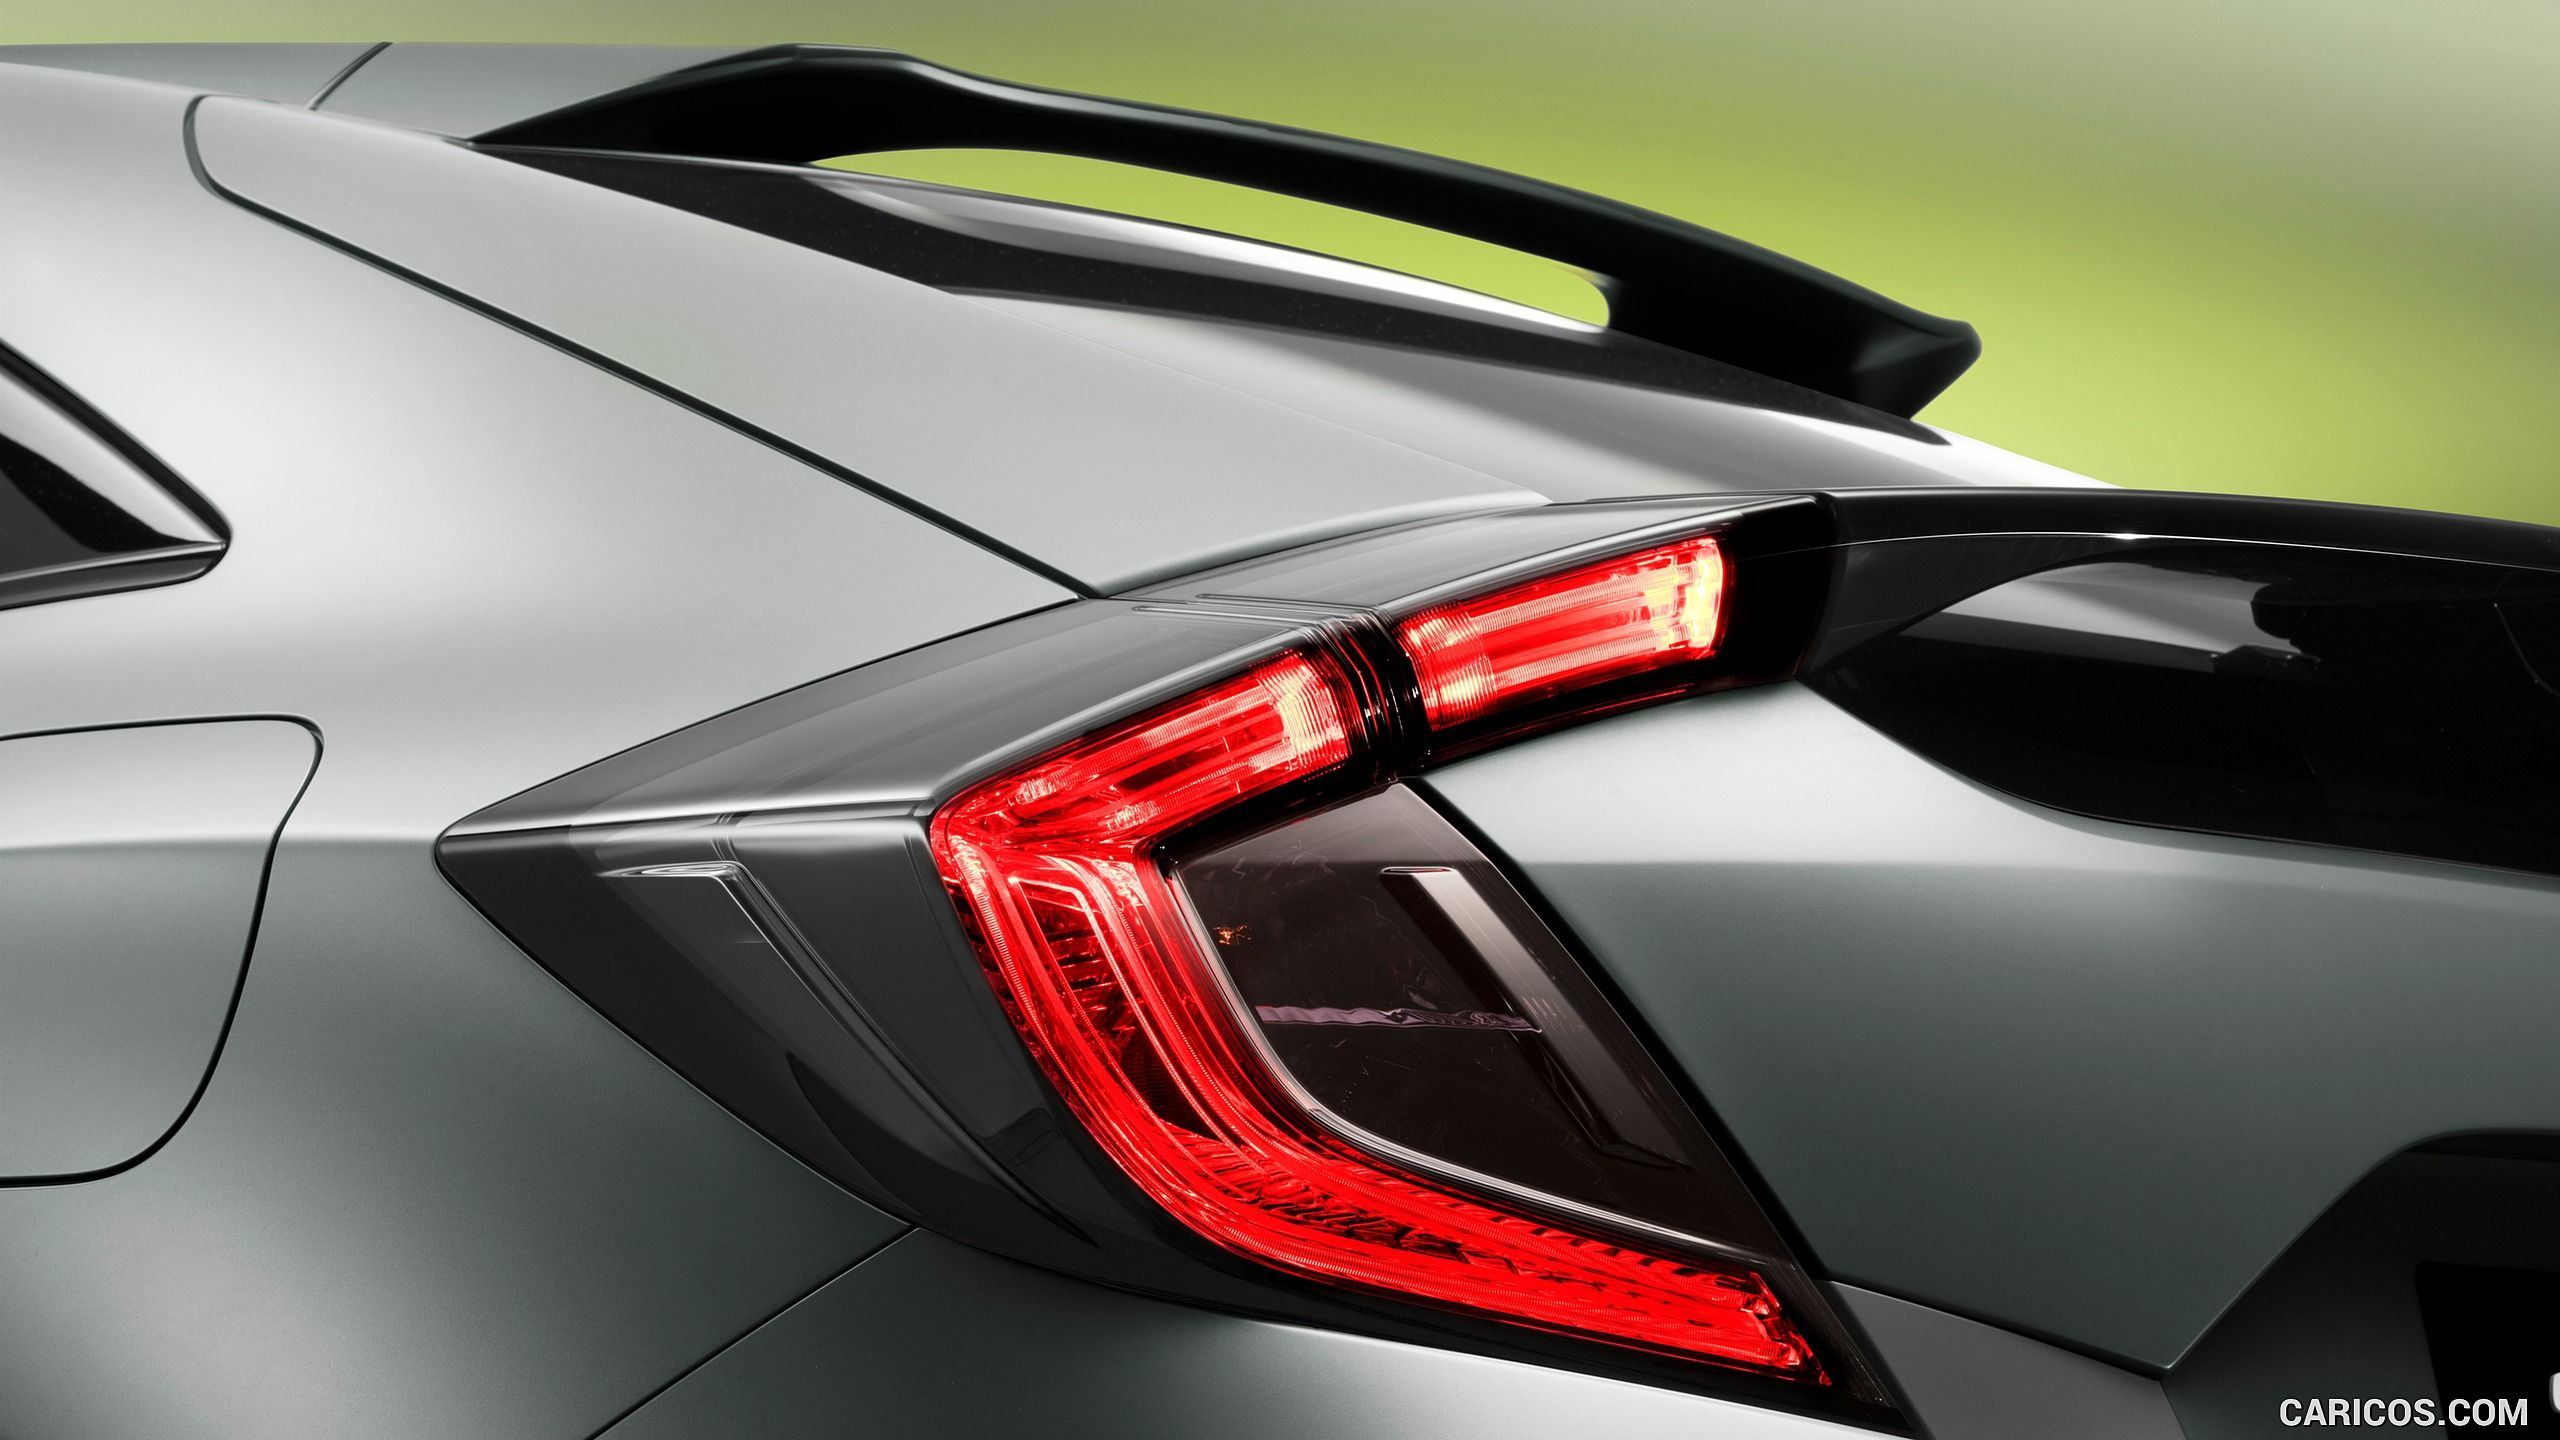 2016 Honda Civic Hatchback Concept Wallpaper